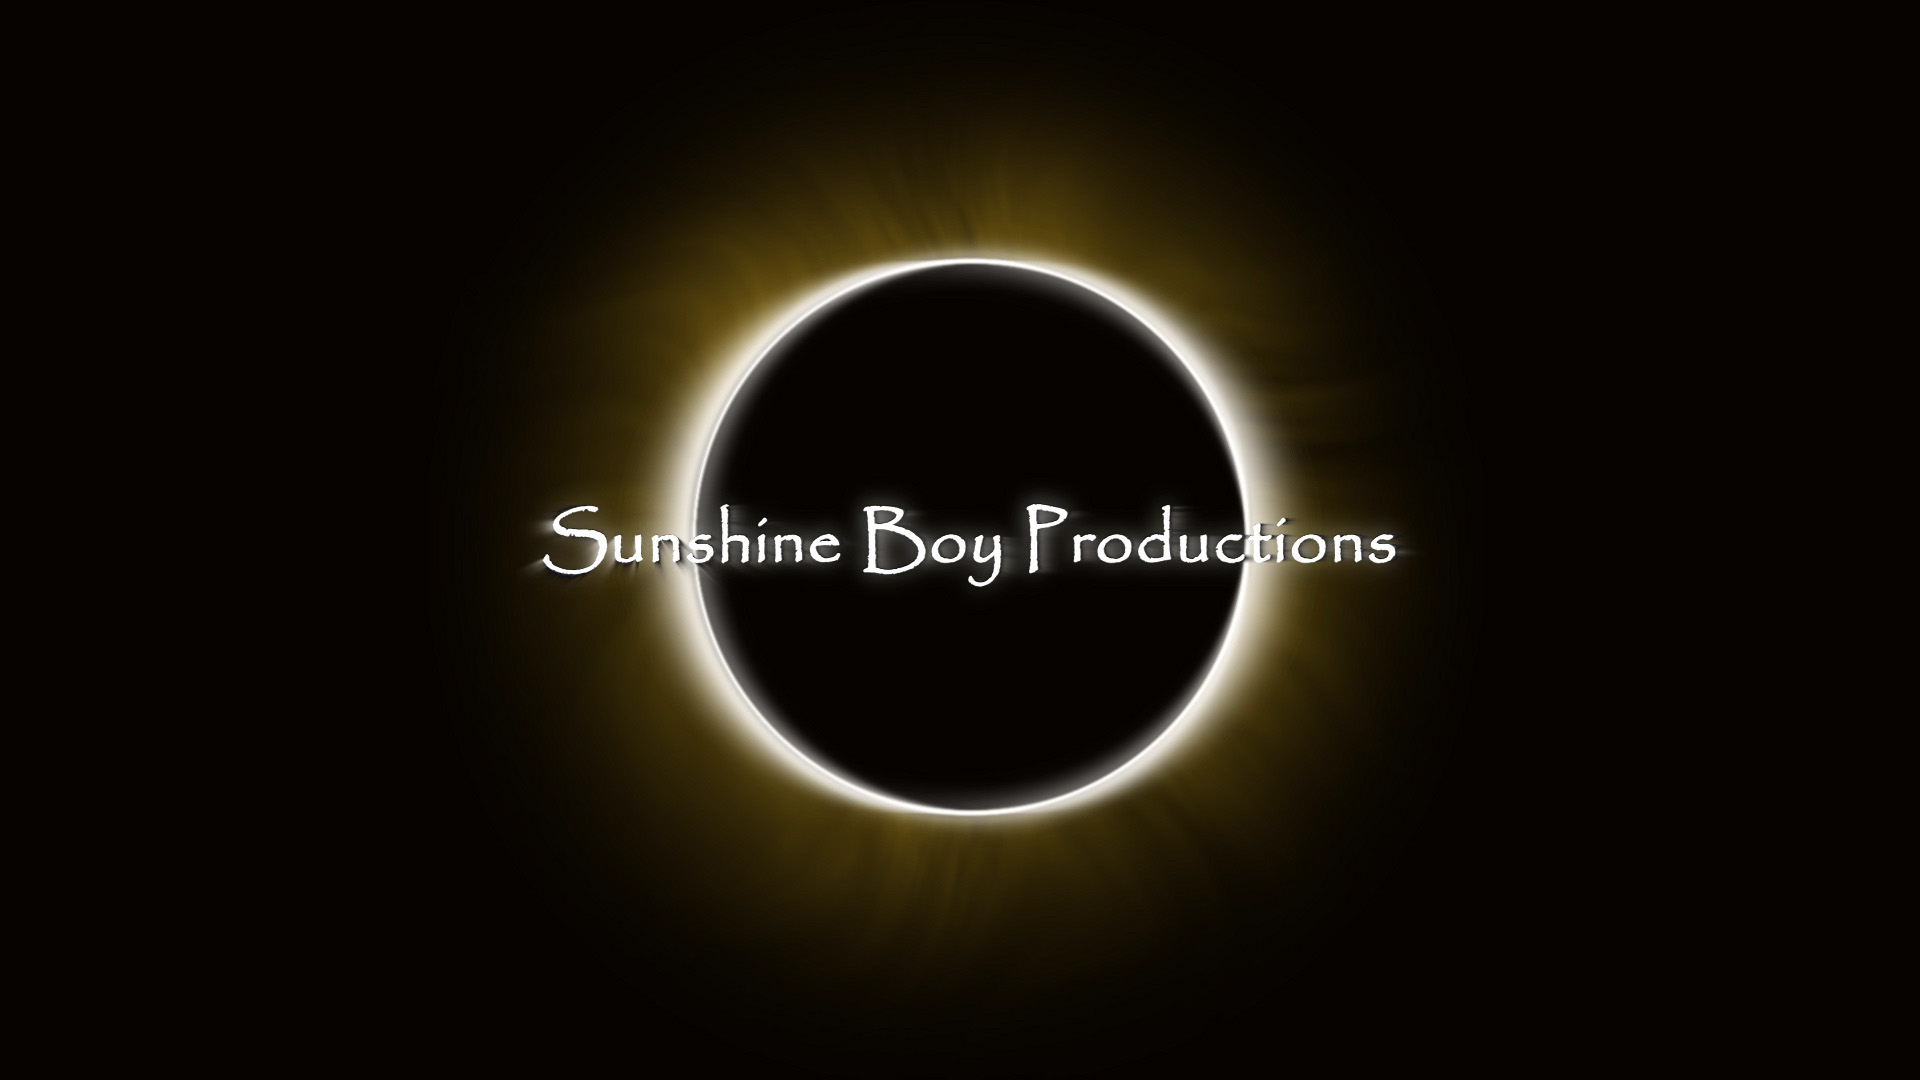 Sunshine Boy Productions